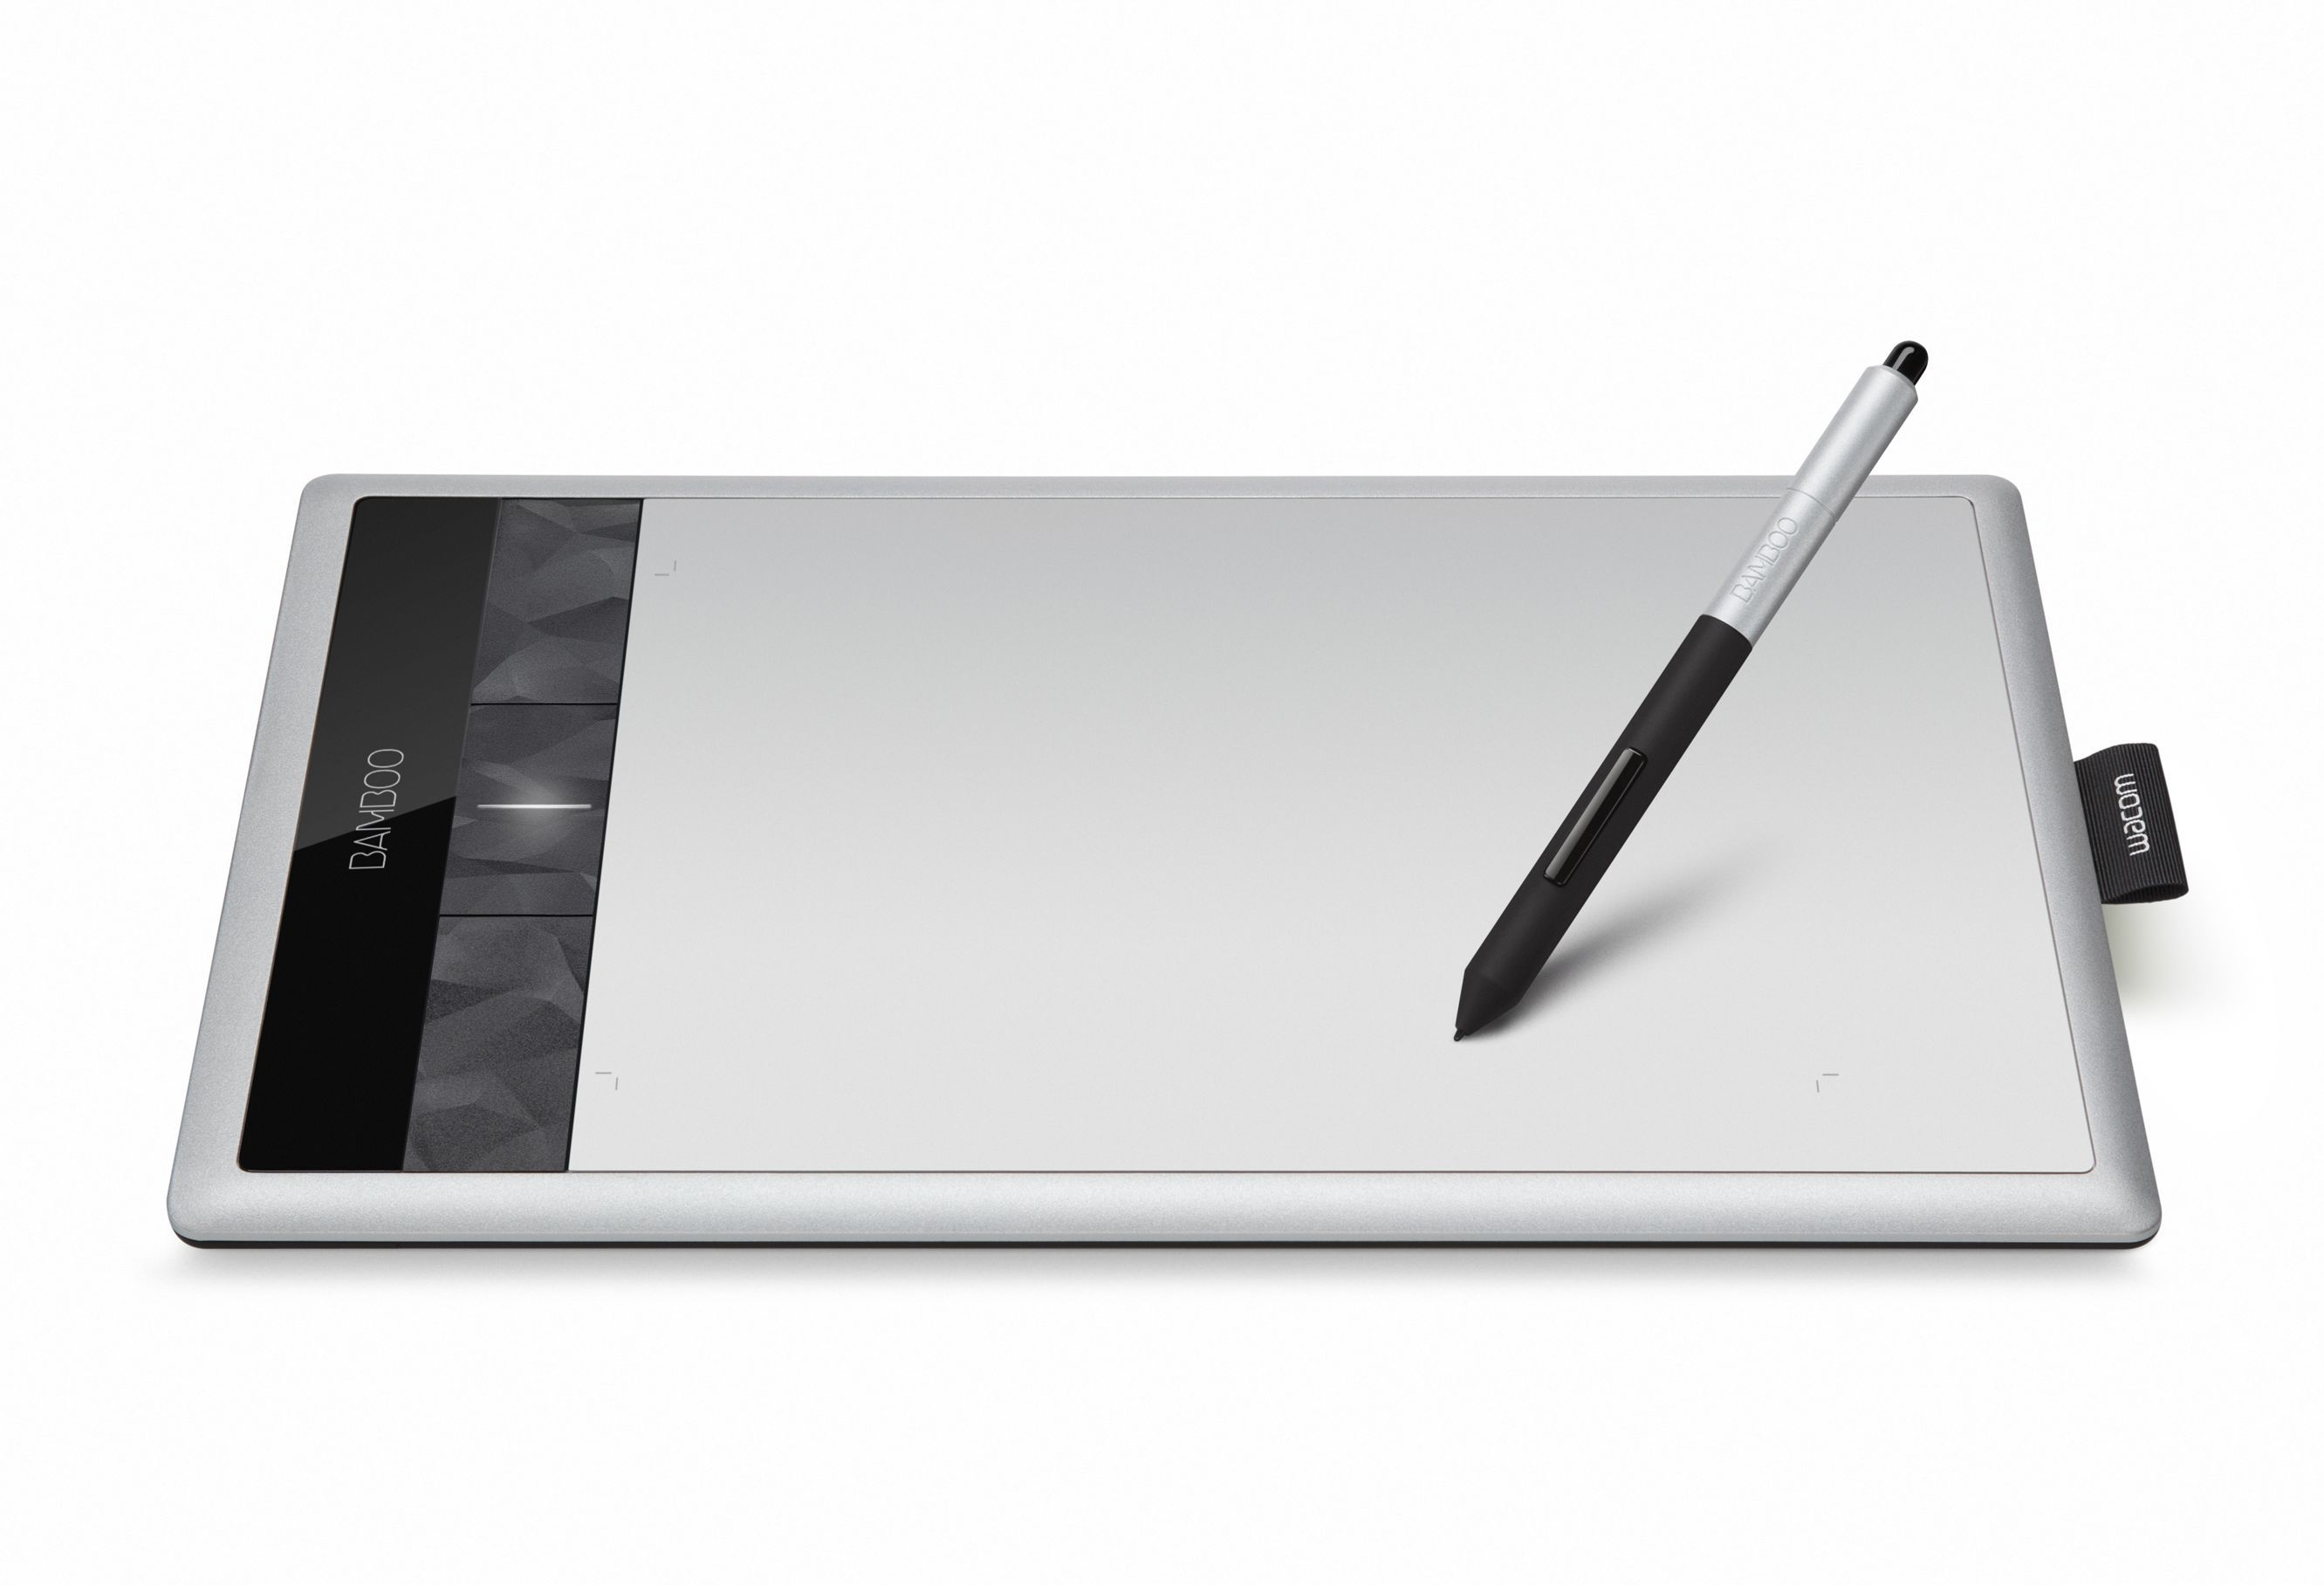 Drawing Lines With Tablet : Wacom bamboo graphics tablet review and rating